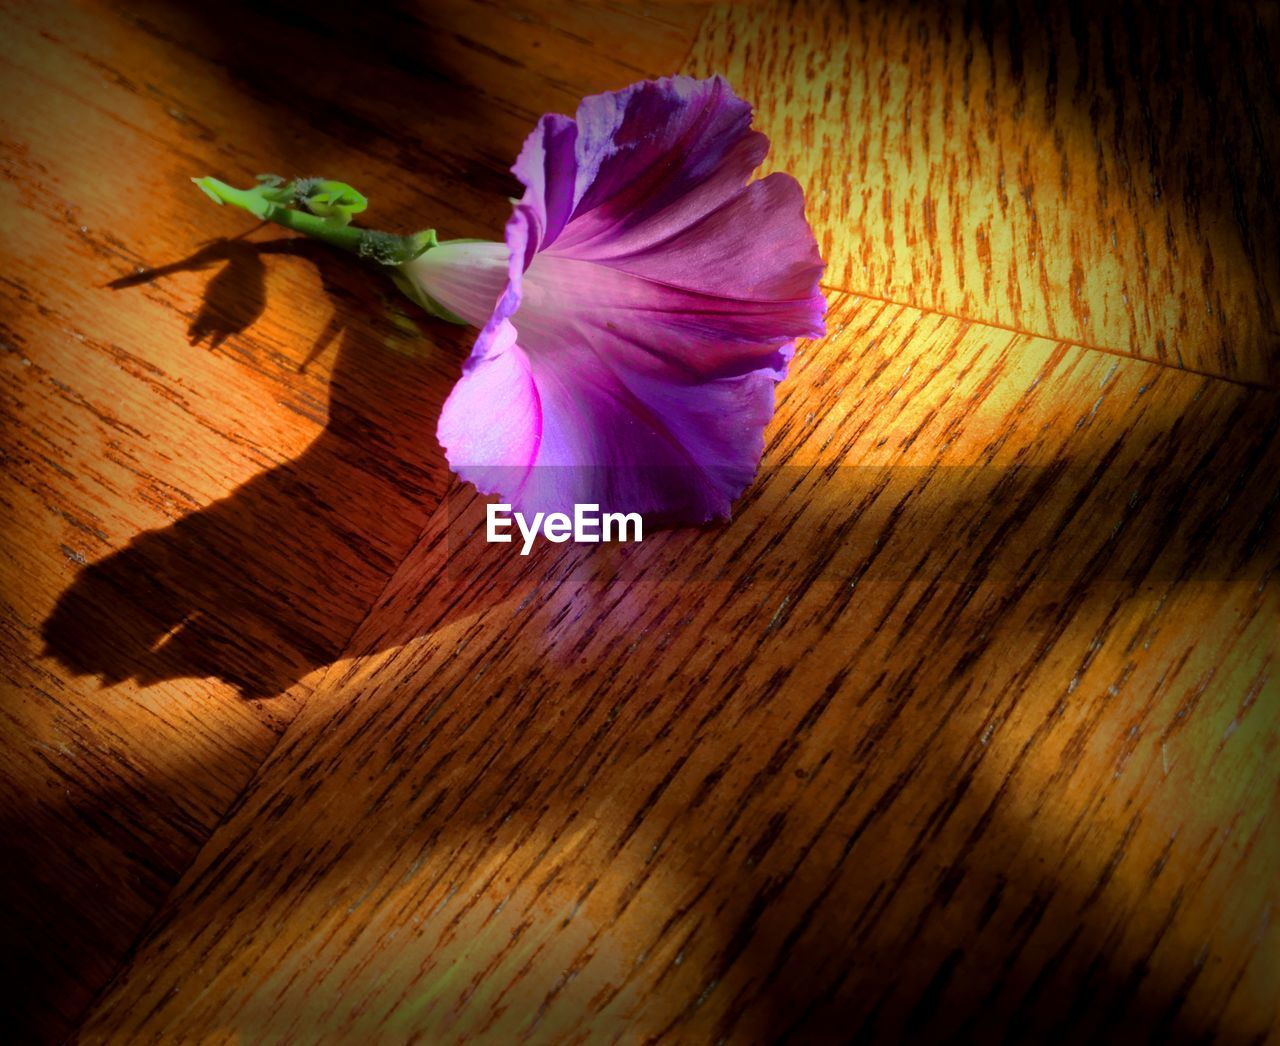 Close-up of fresh purple flower on table